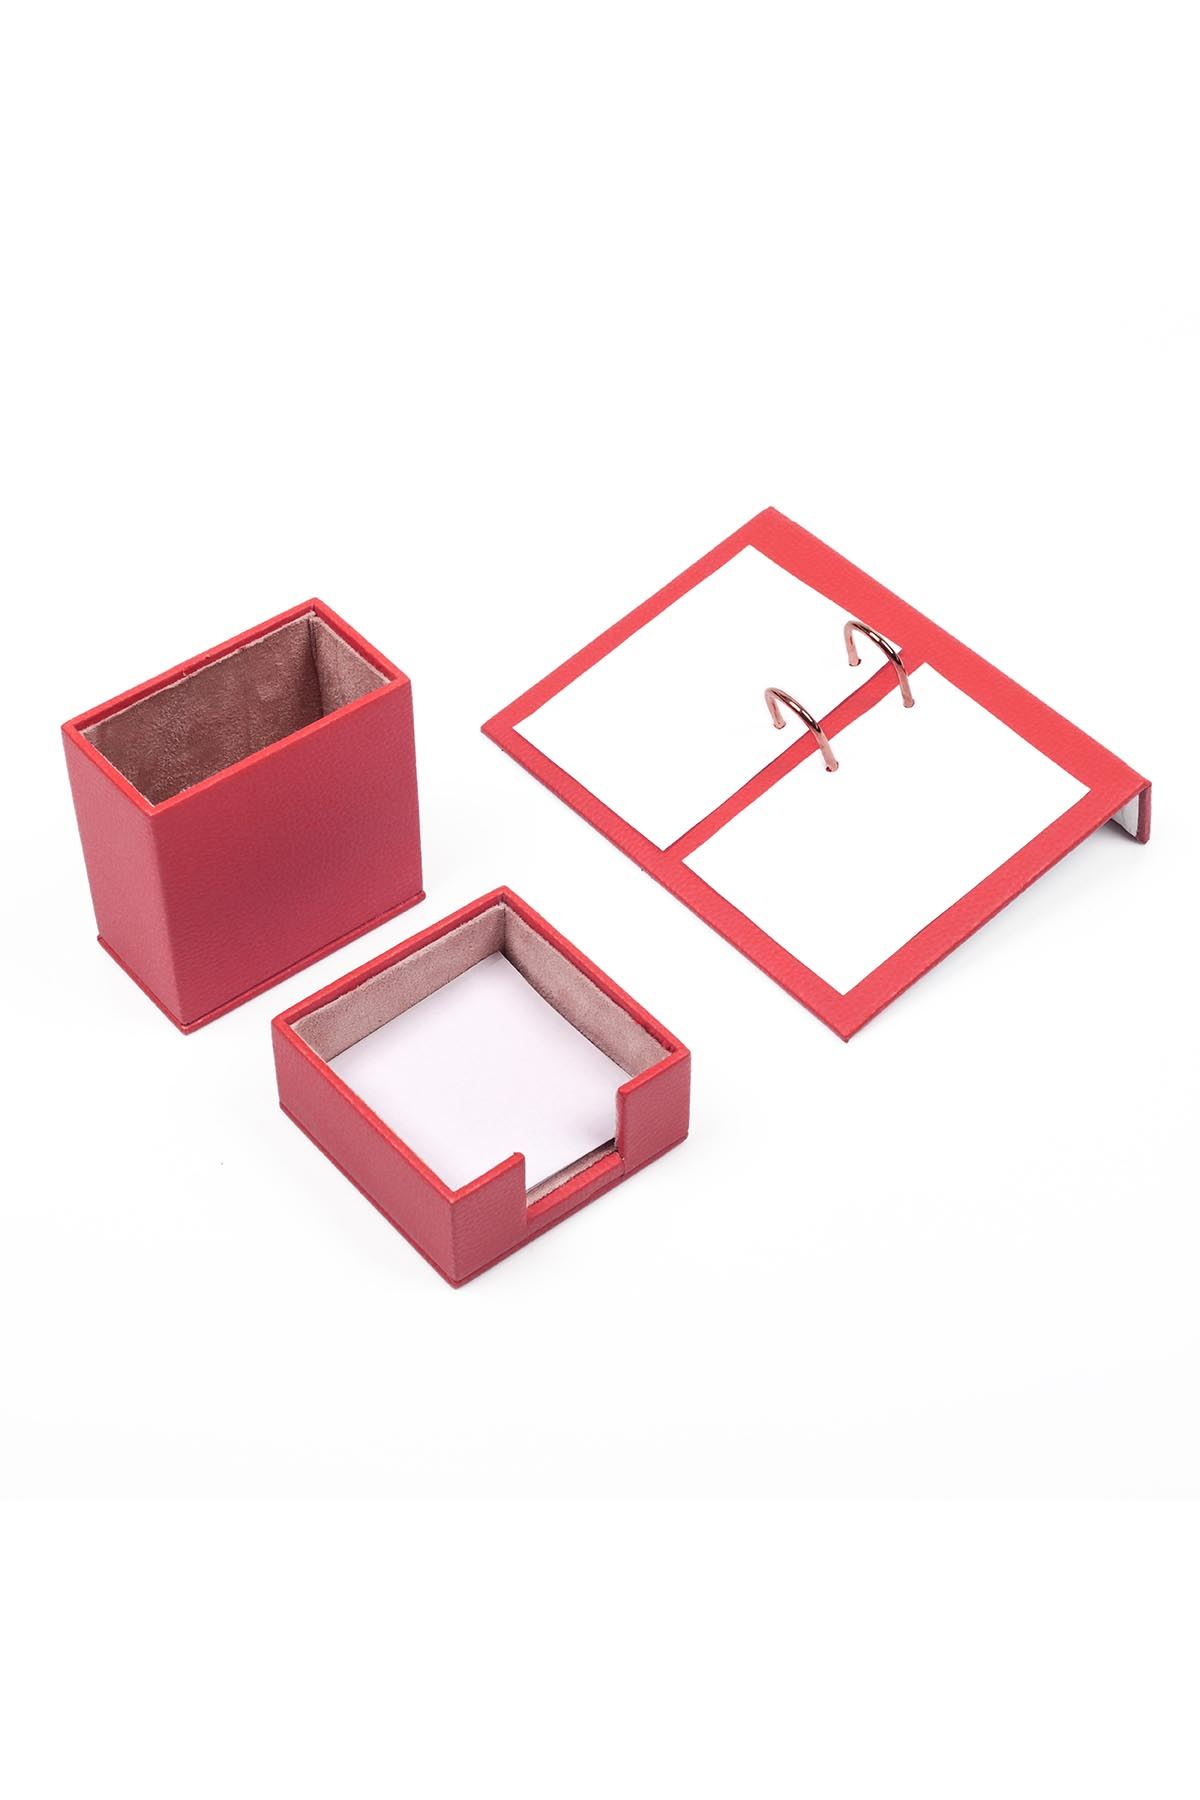 Leather Desk Accessories set of 3 Red| Desk Set Accessories | Desktop Accessories | Desk Accessories | Desk Organizers